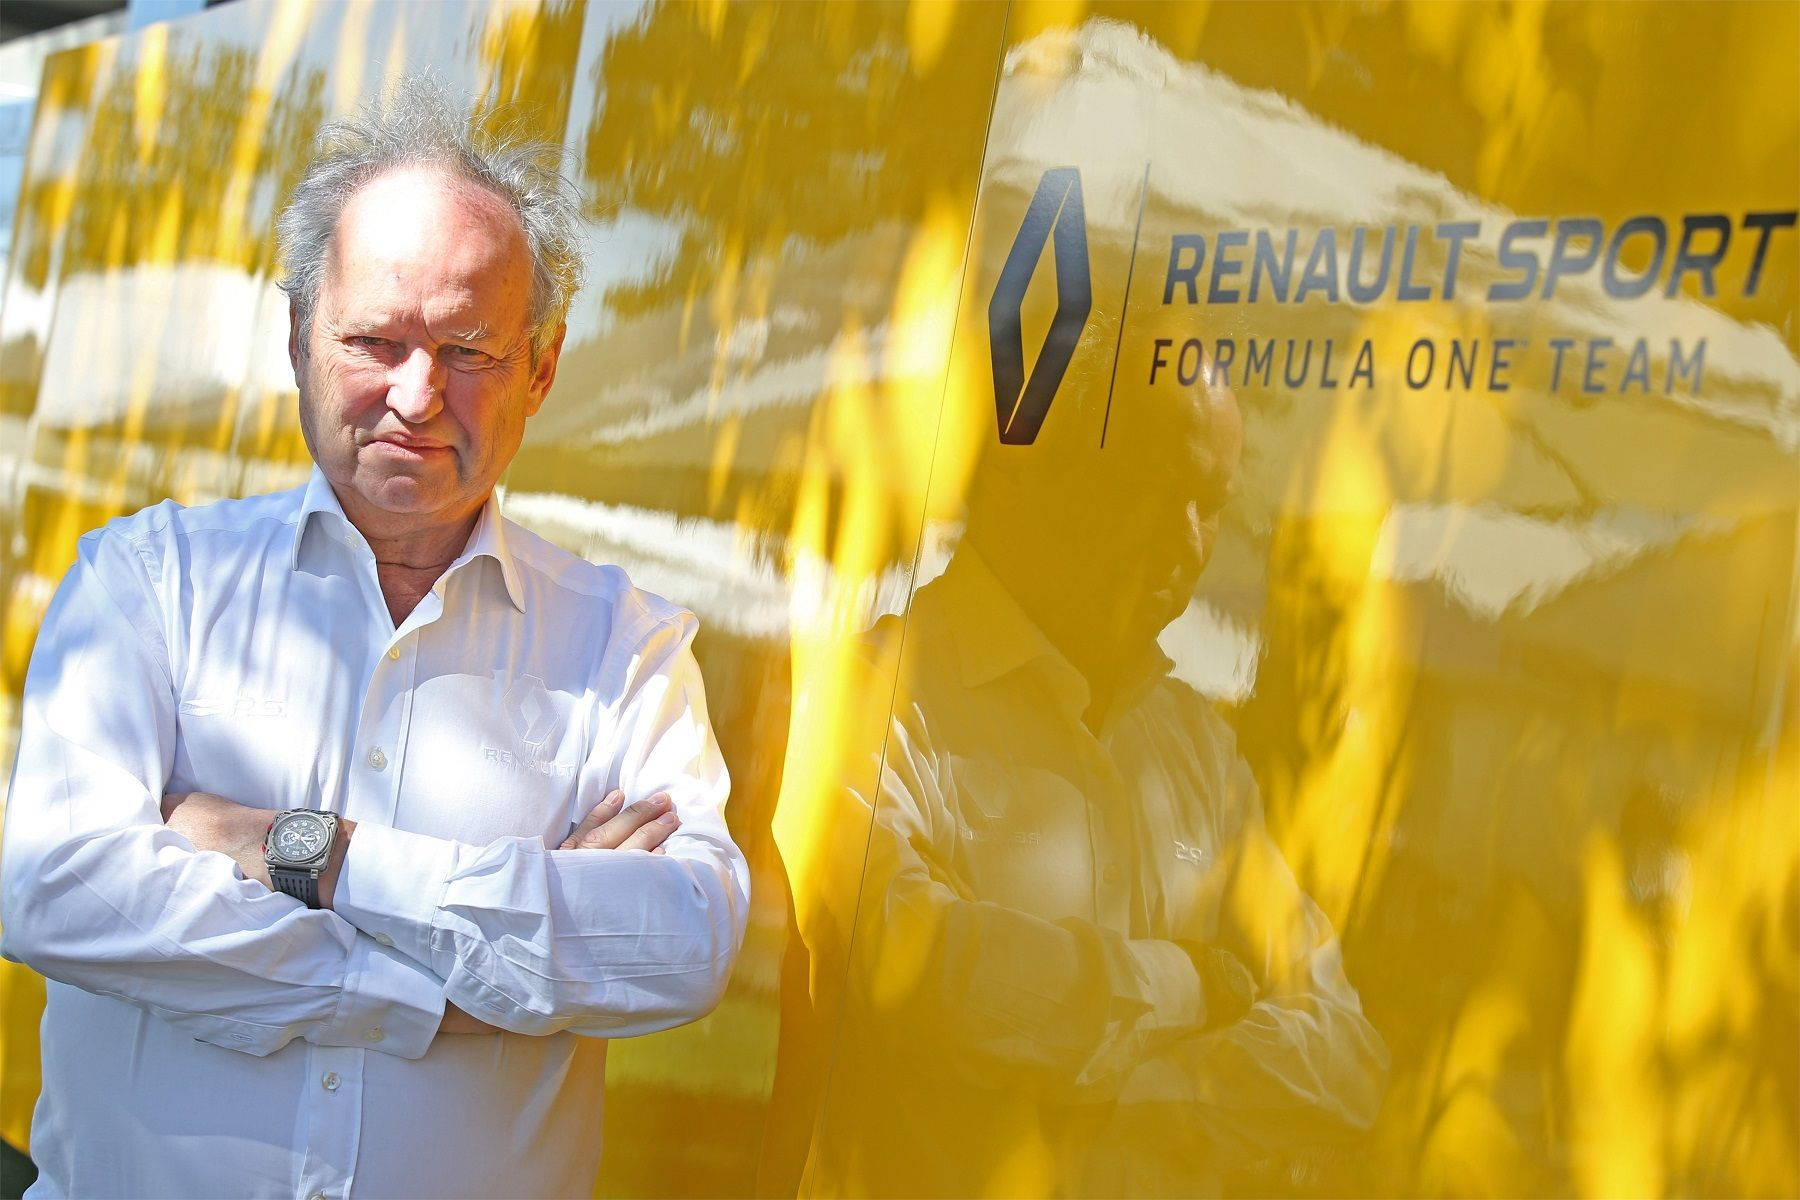 Jerome Stoll, Renault